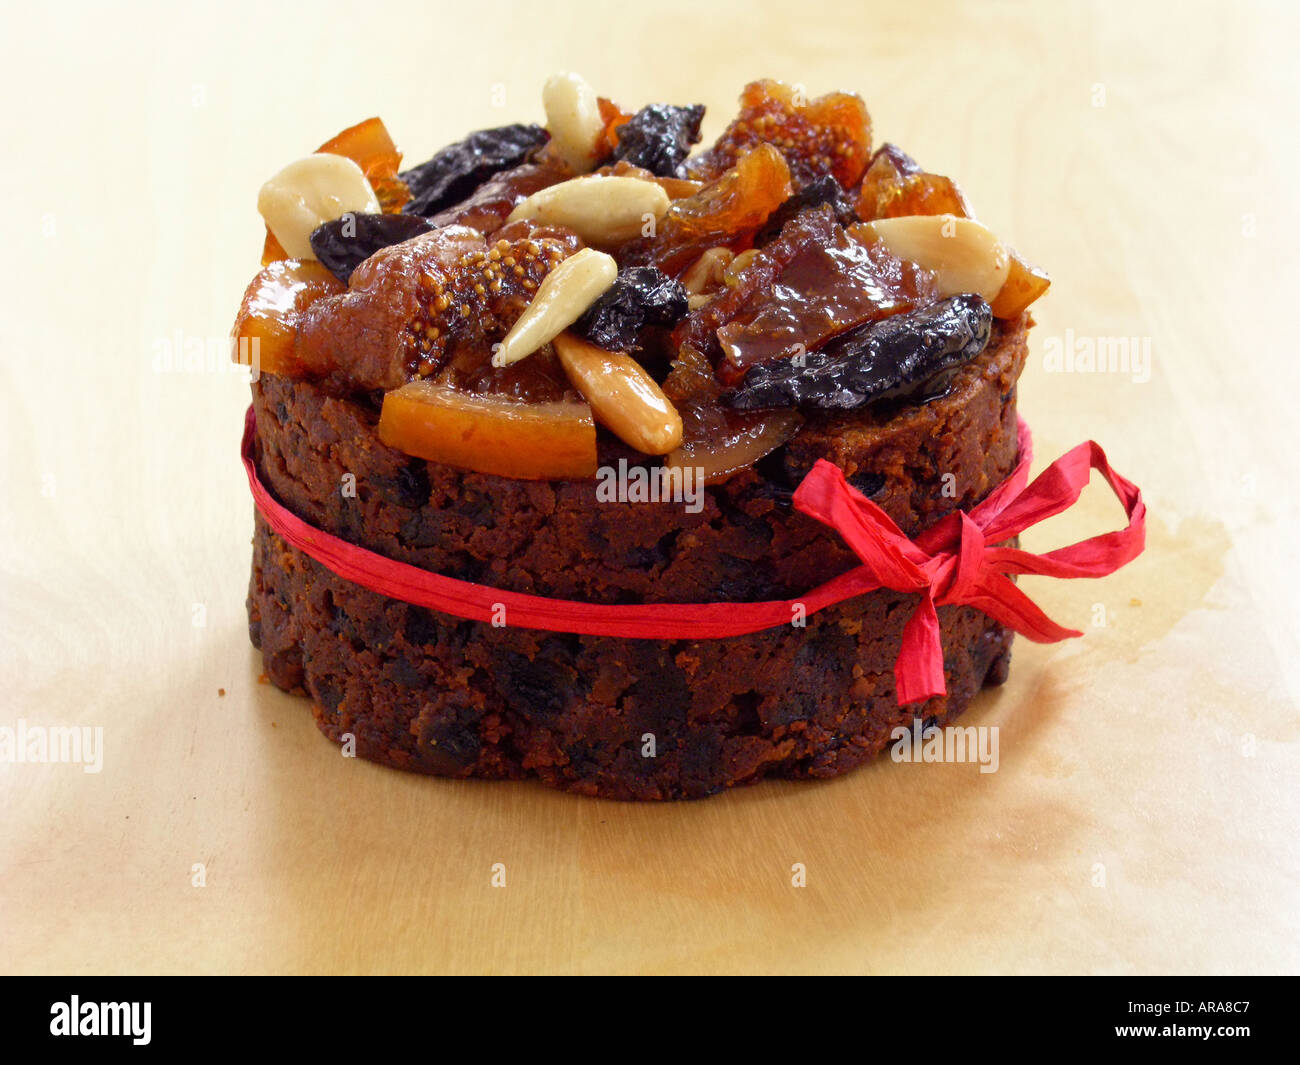 Fruit cake with glazed topping of nuts and dried fruit ...